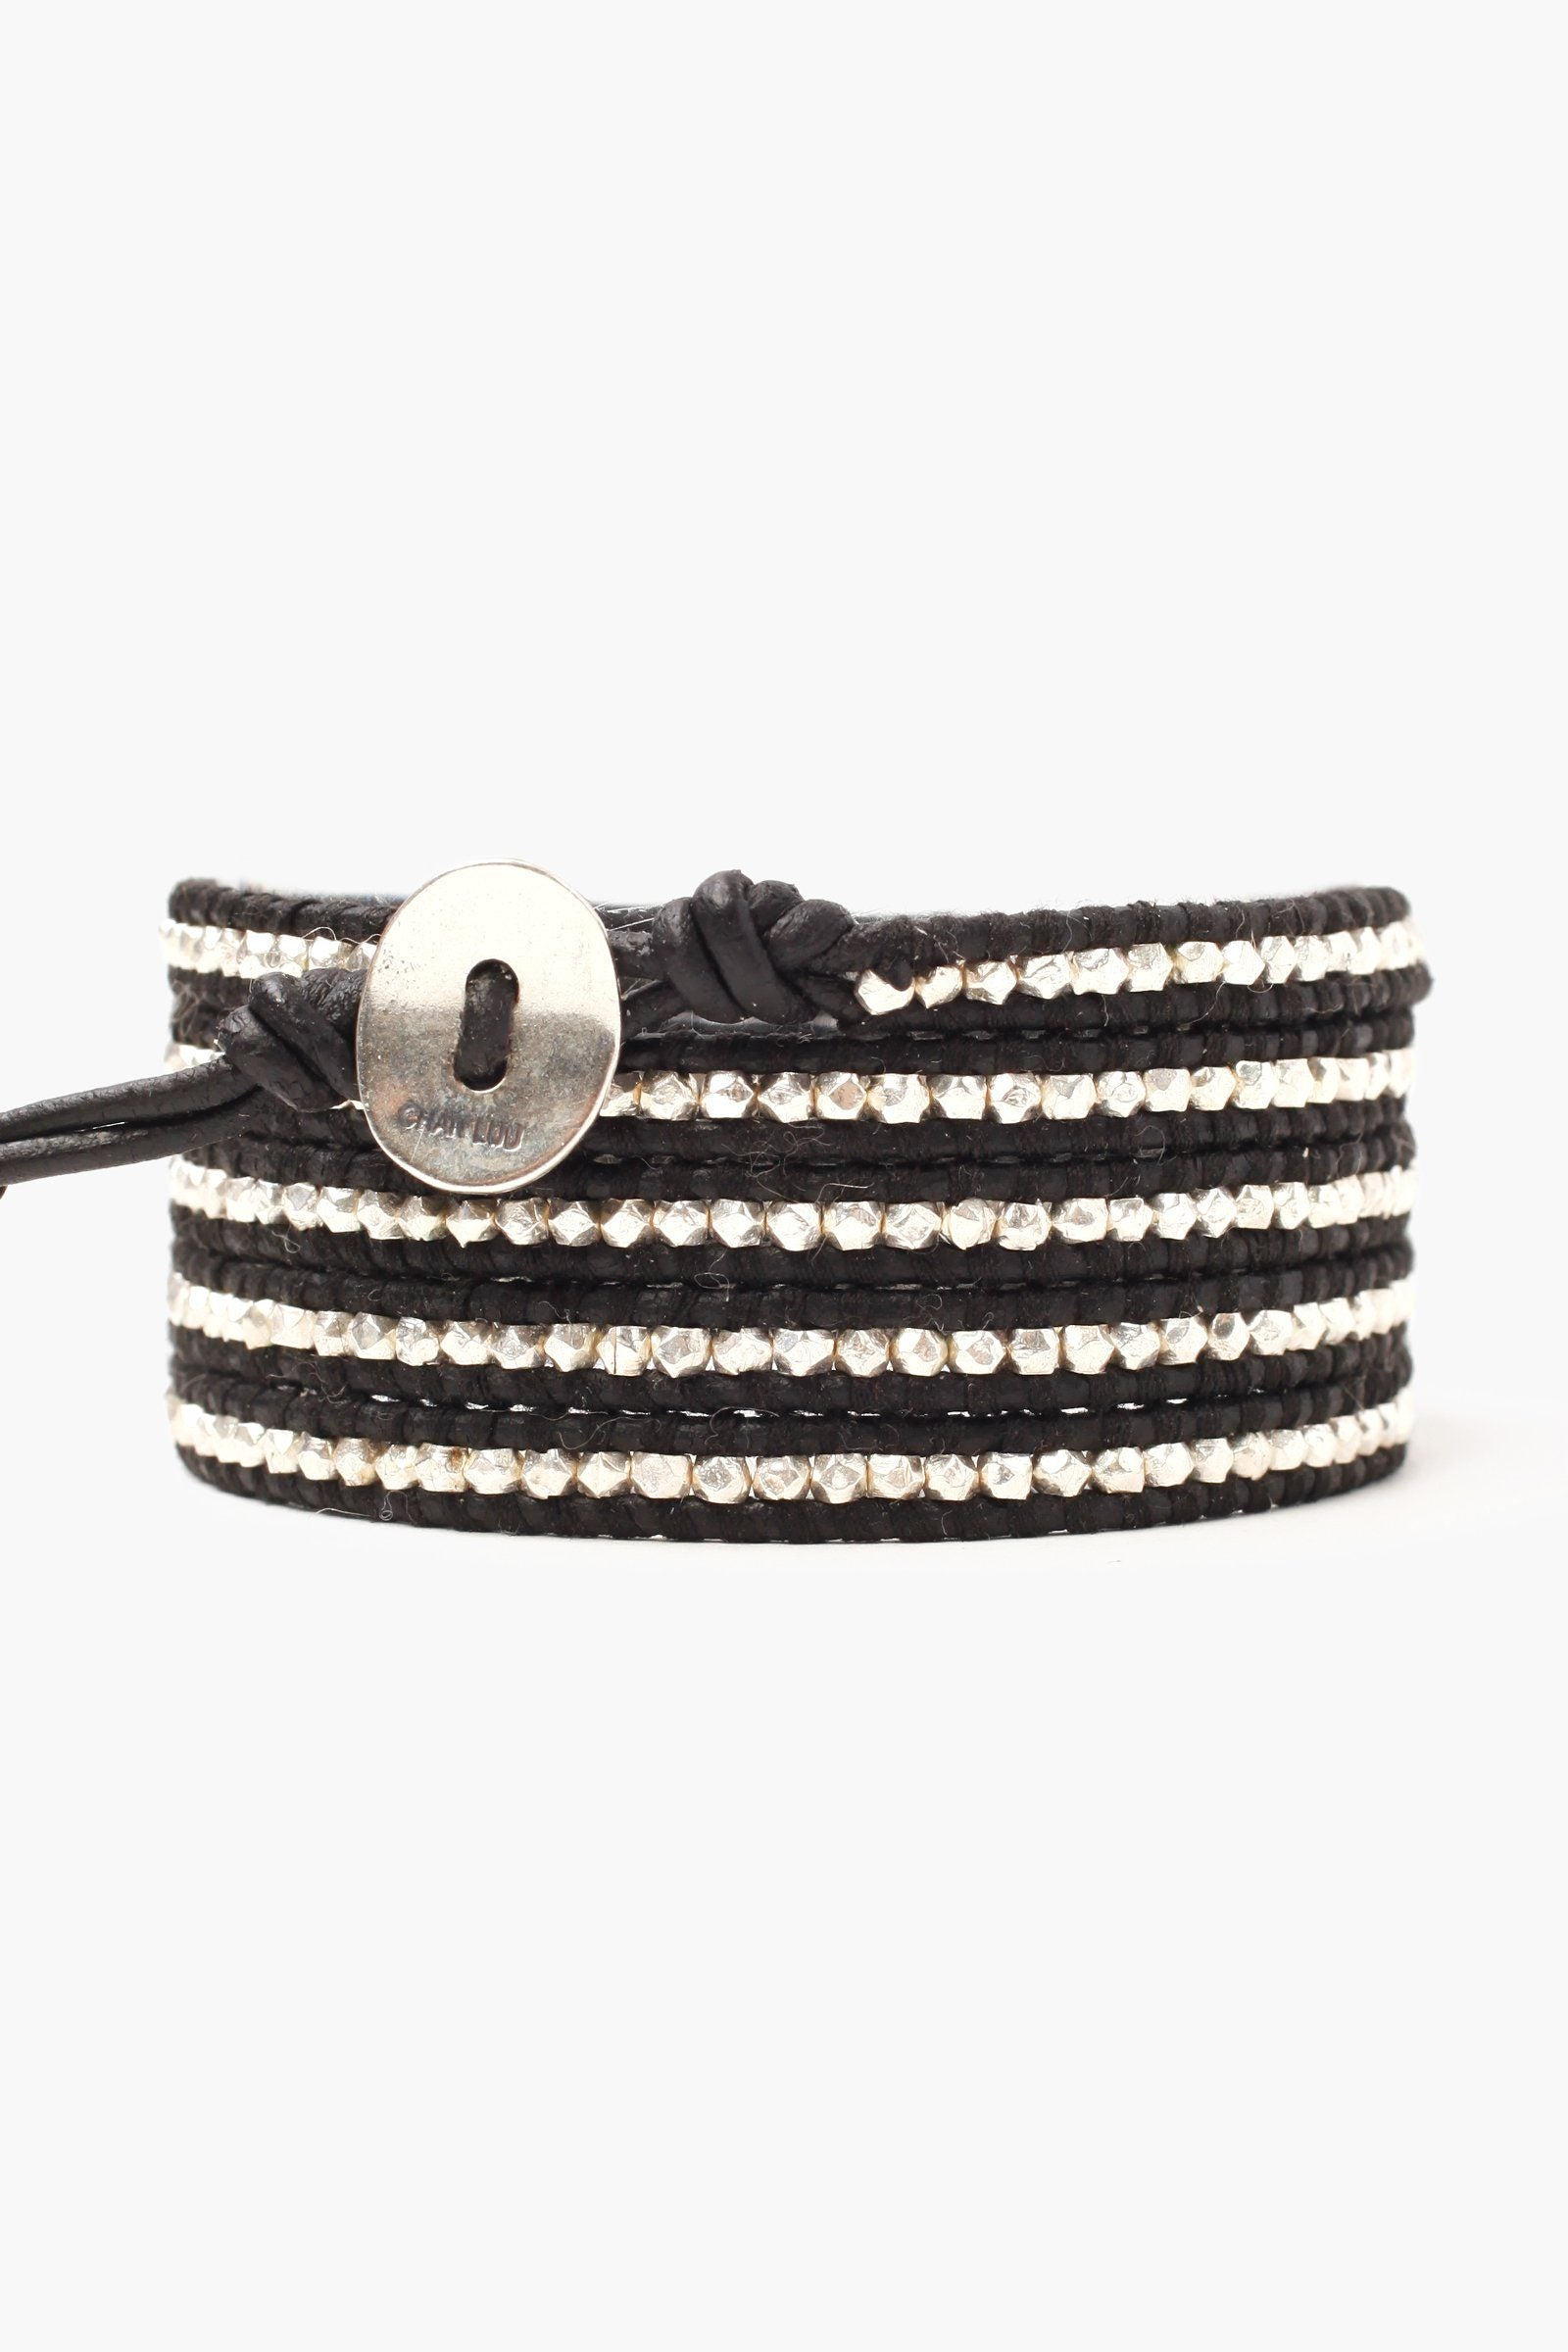 Sterling Silver Nugget Men's Five Wrap Bracelet on Natural Black Leather